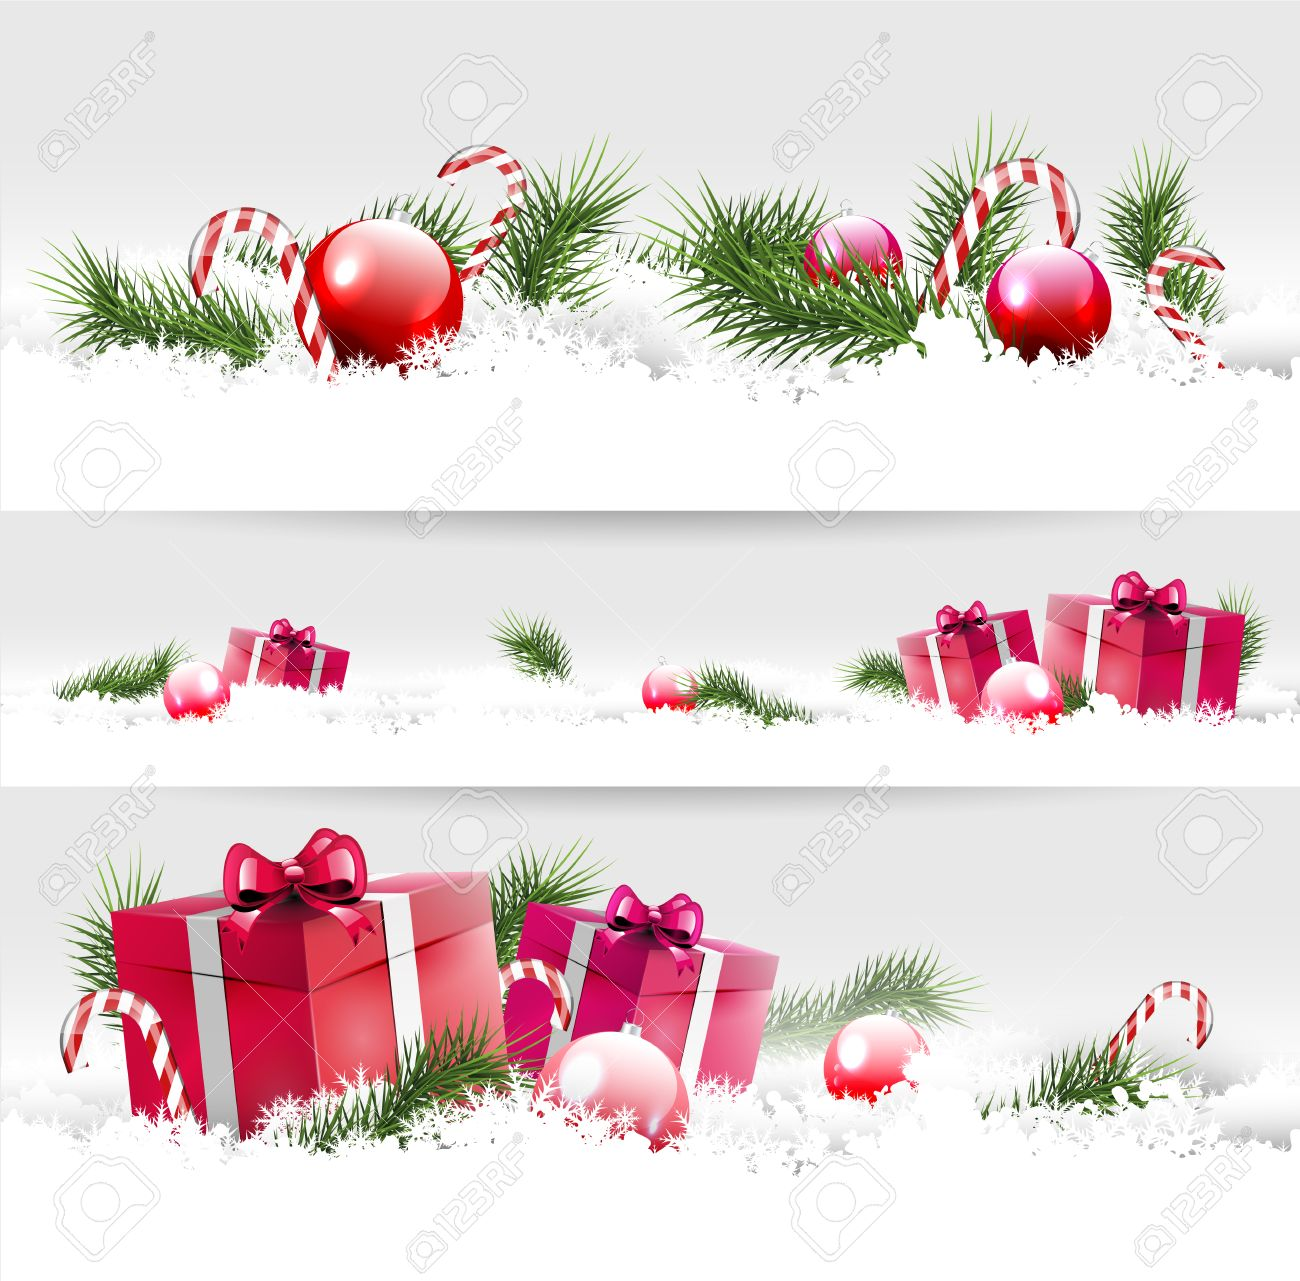 Set of three Christmas borders with gifts, balls and branches Stock Vector - 24250091